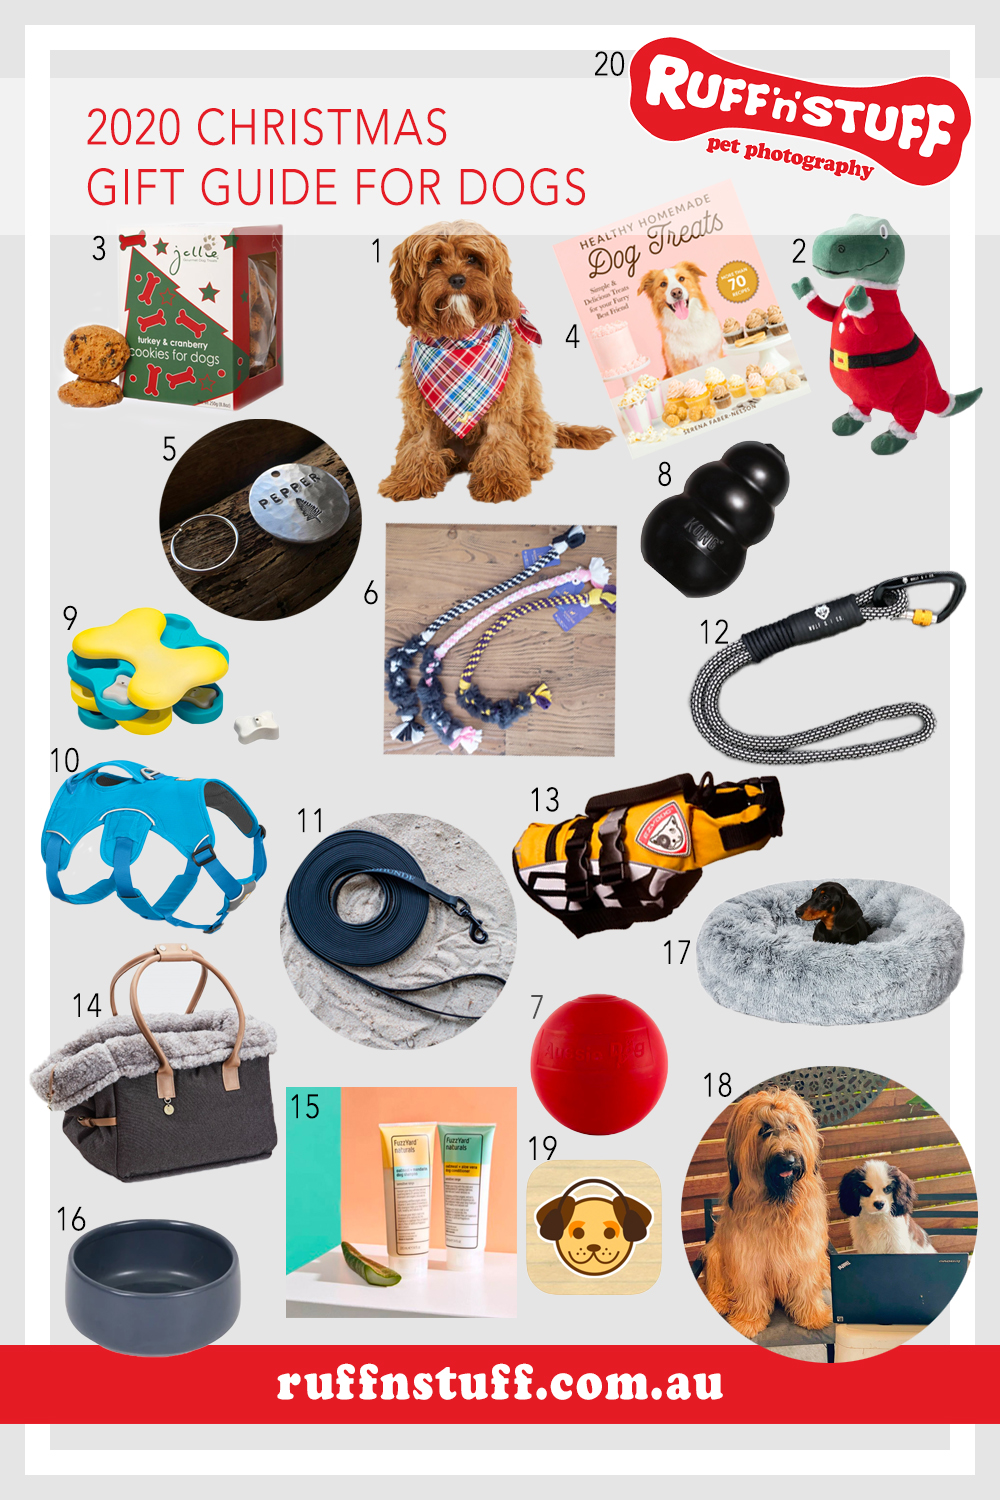 Ruff 'n' Stuff Pet Photography 2020 Christmas Gift Guide for Dogs